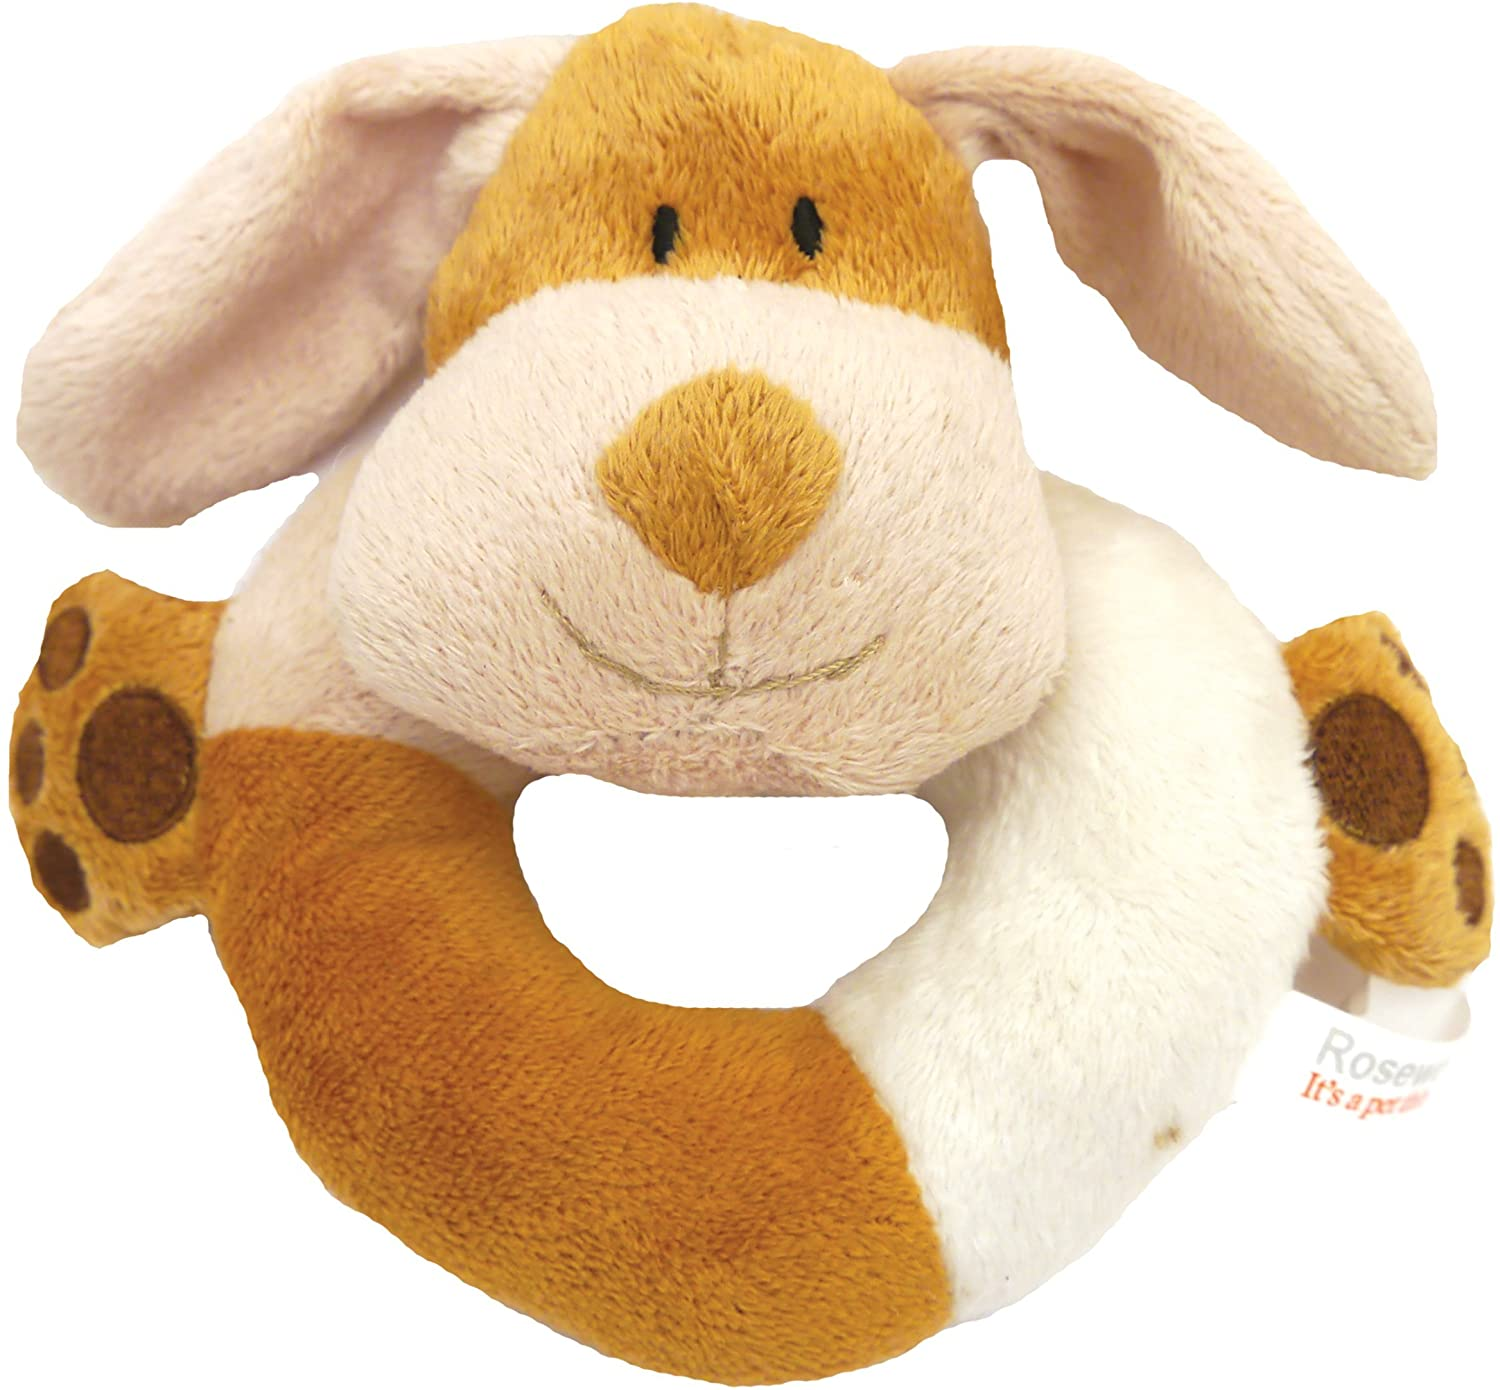 Cuddle plush ring